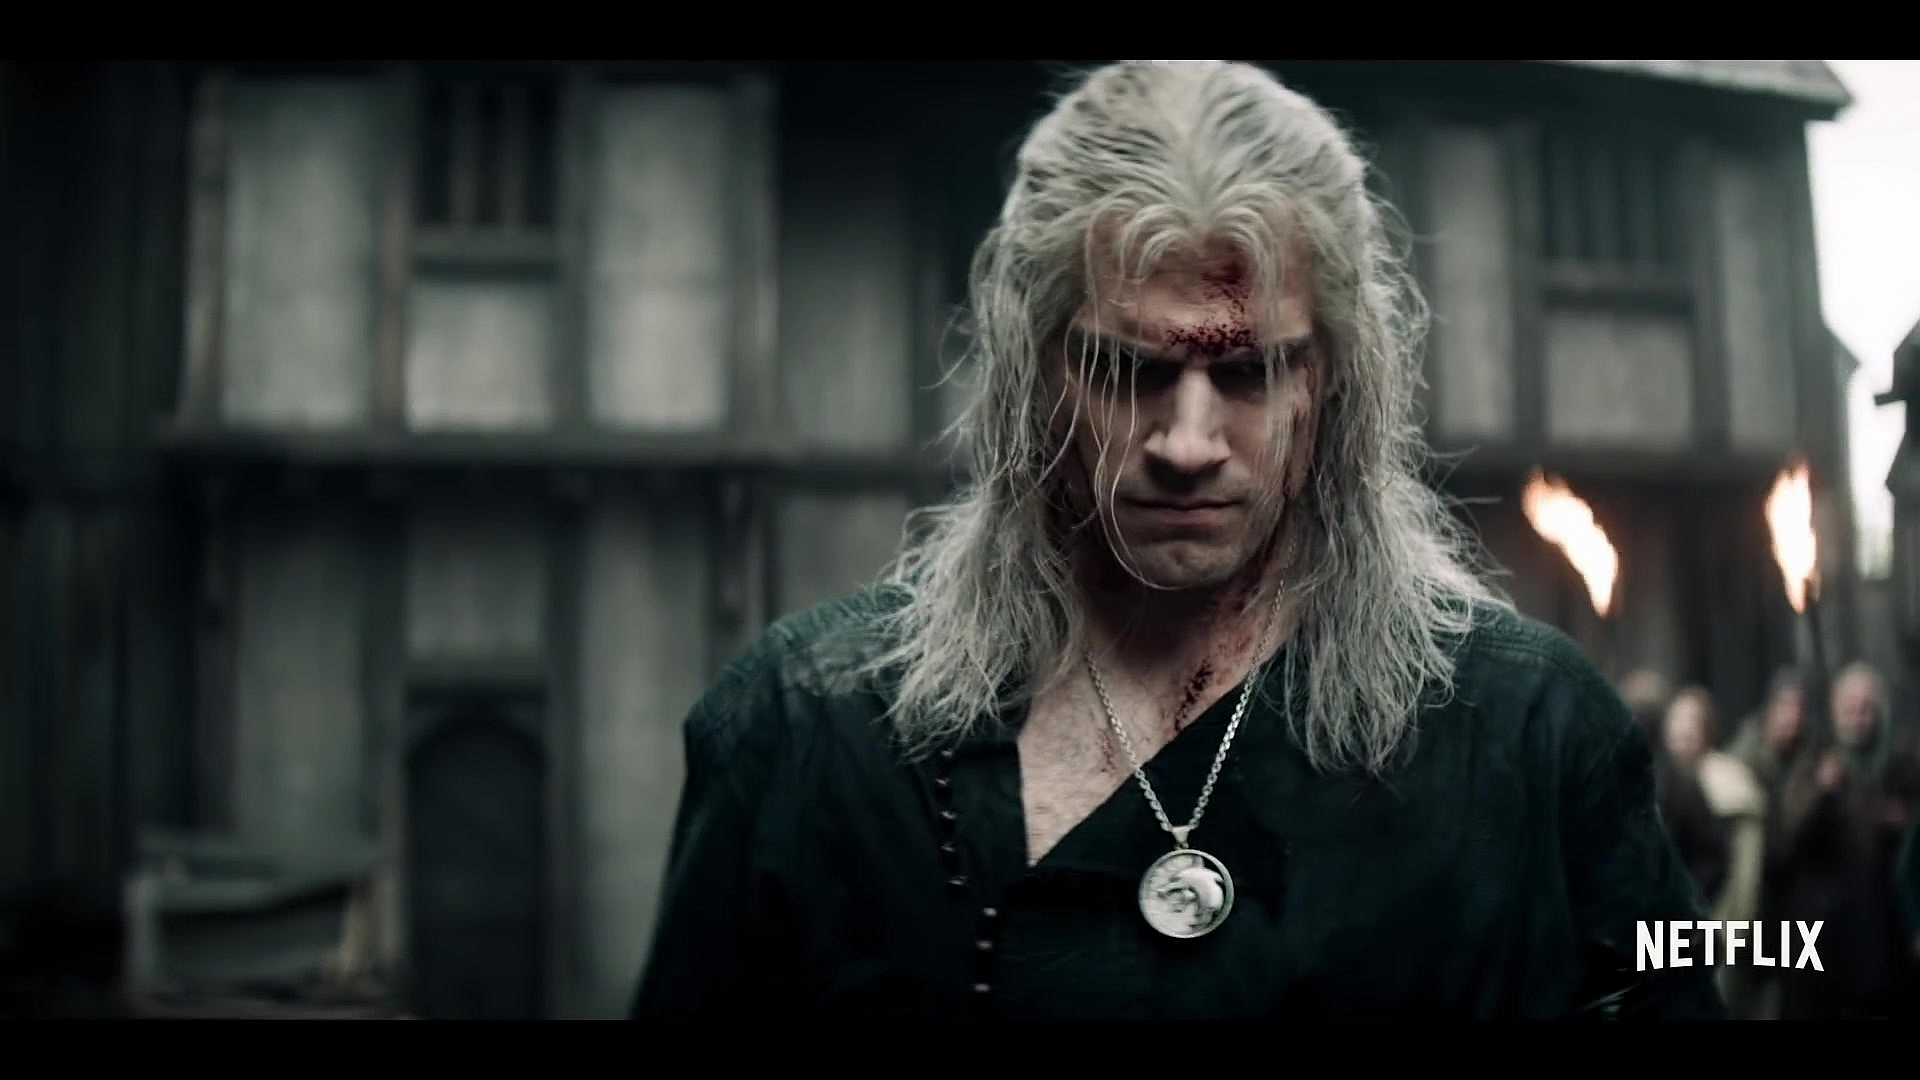 Netflix S The Witcher Trailer Is Out Showrunner Vows To